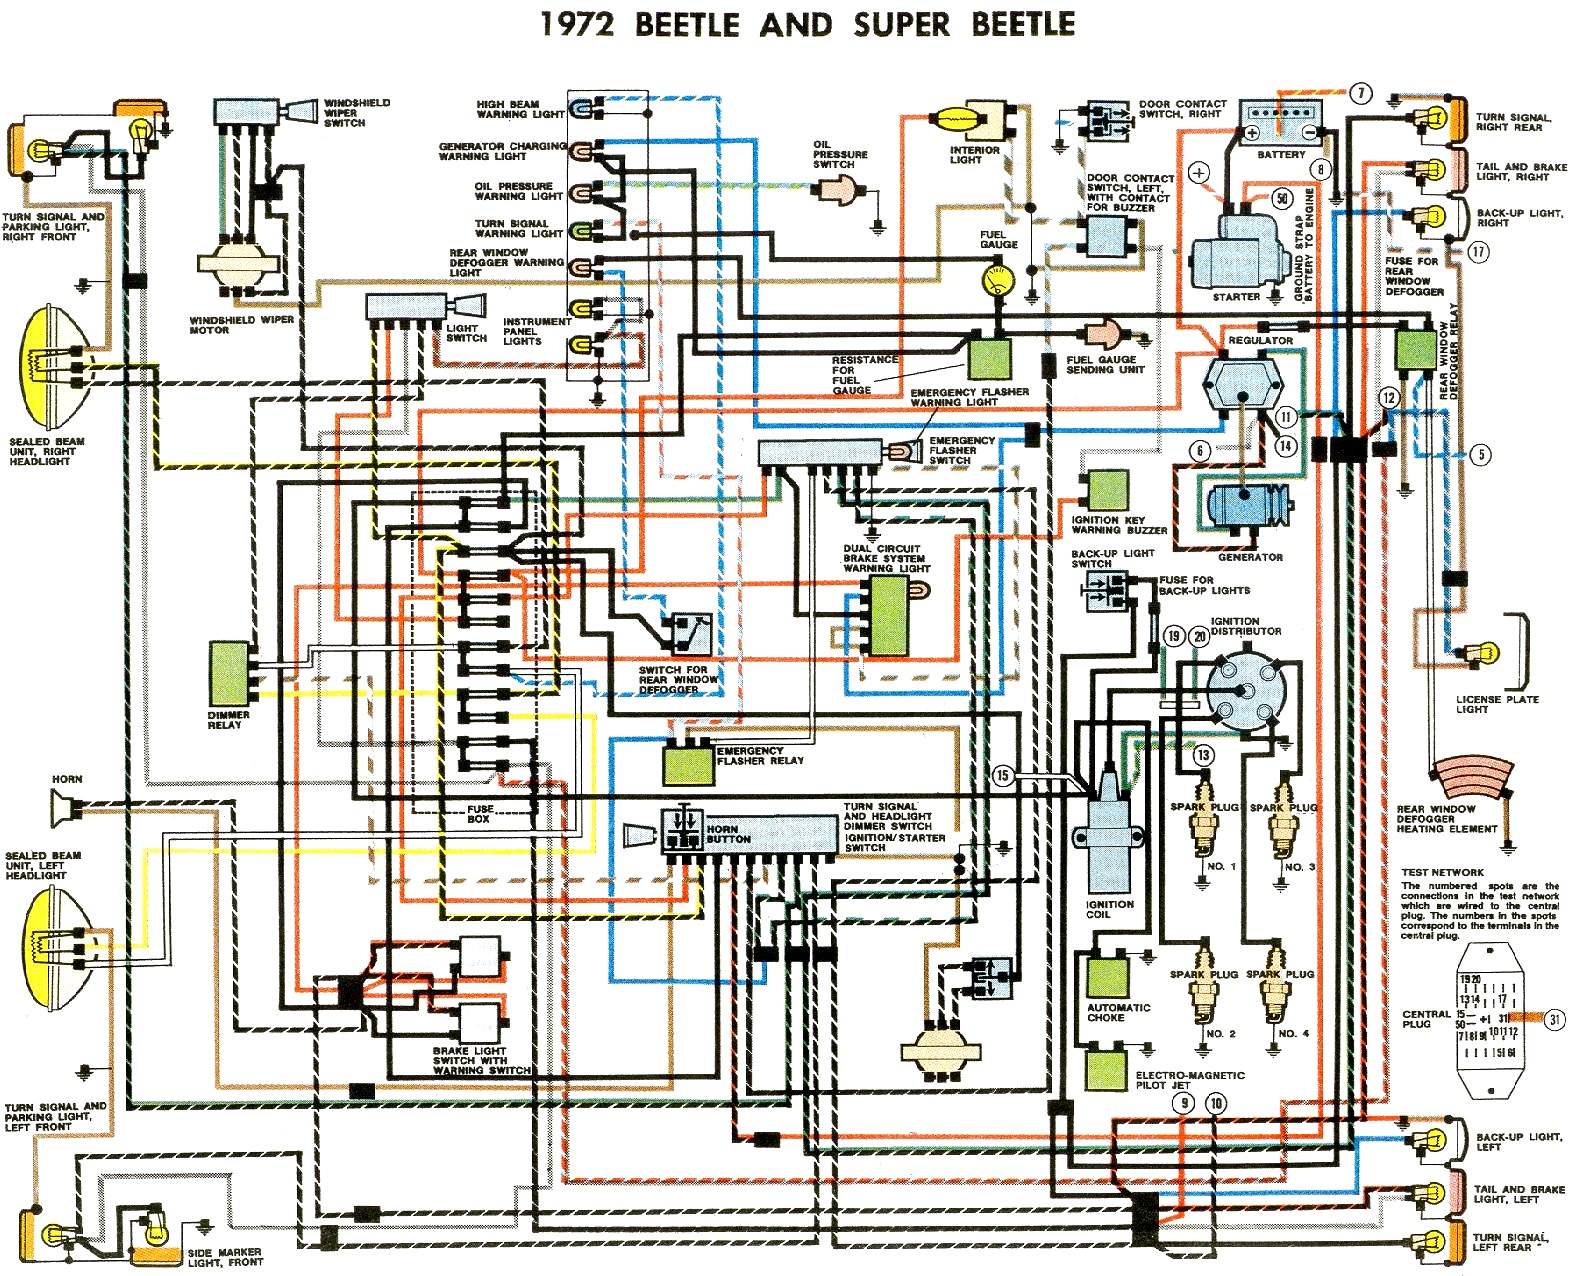 Wiring Diagram For 1972 Vw Super Beetle Diagrams 1970 Engine Thegoldenbug Com 73 Convertible Electrical